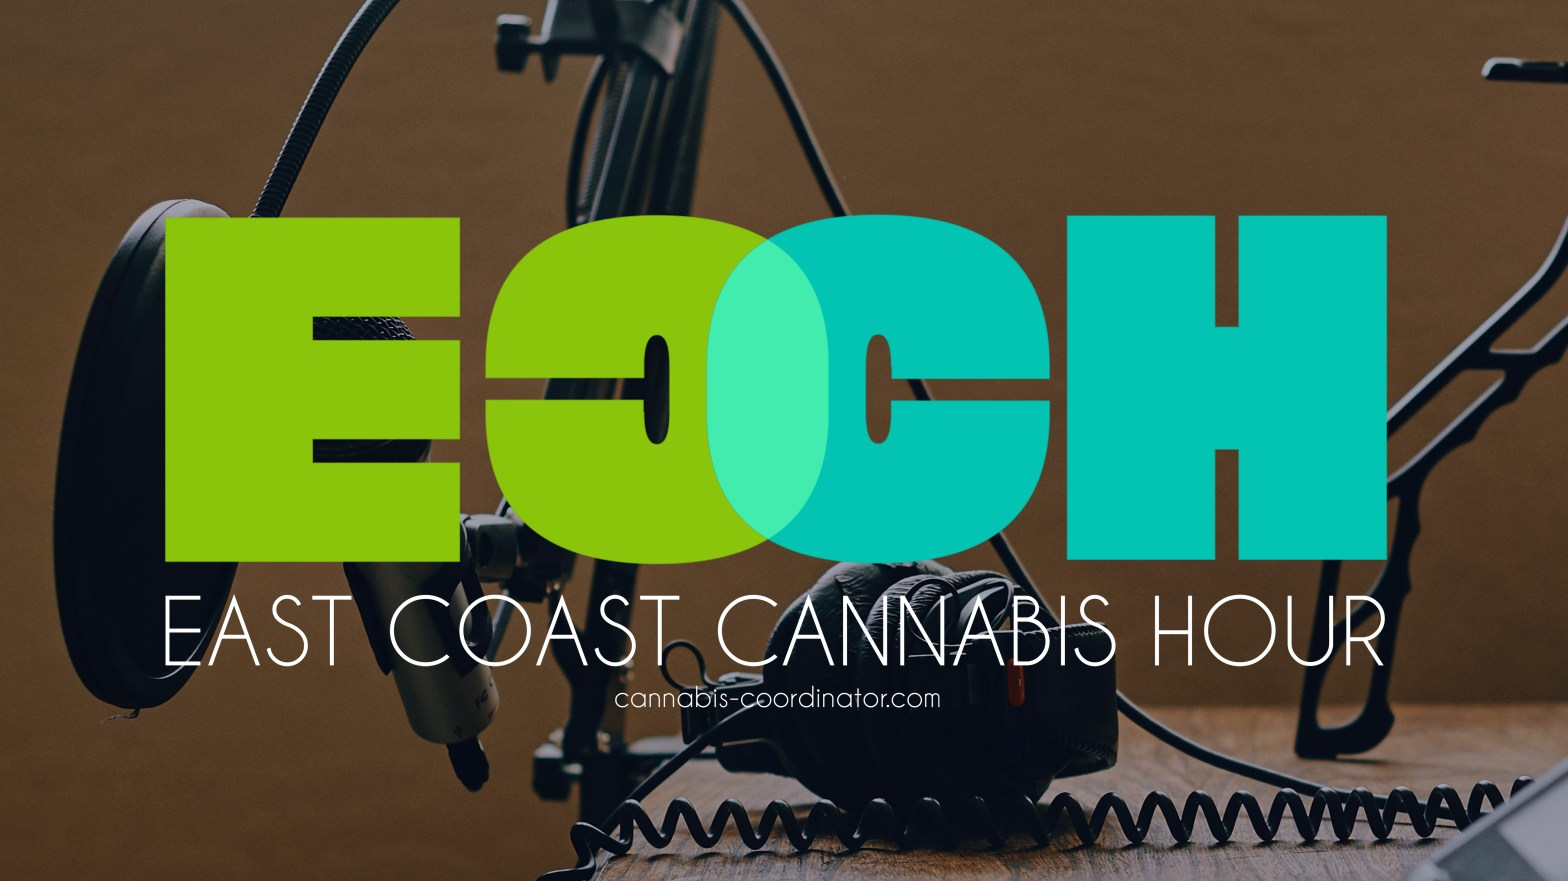 ECCH logo on microphone background